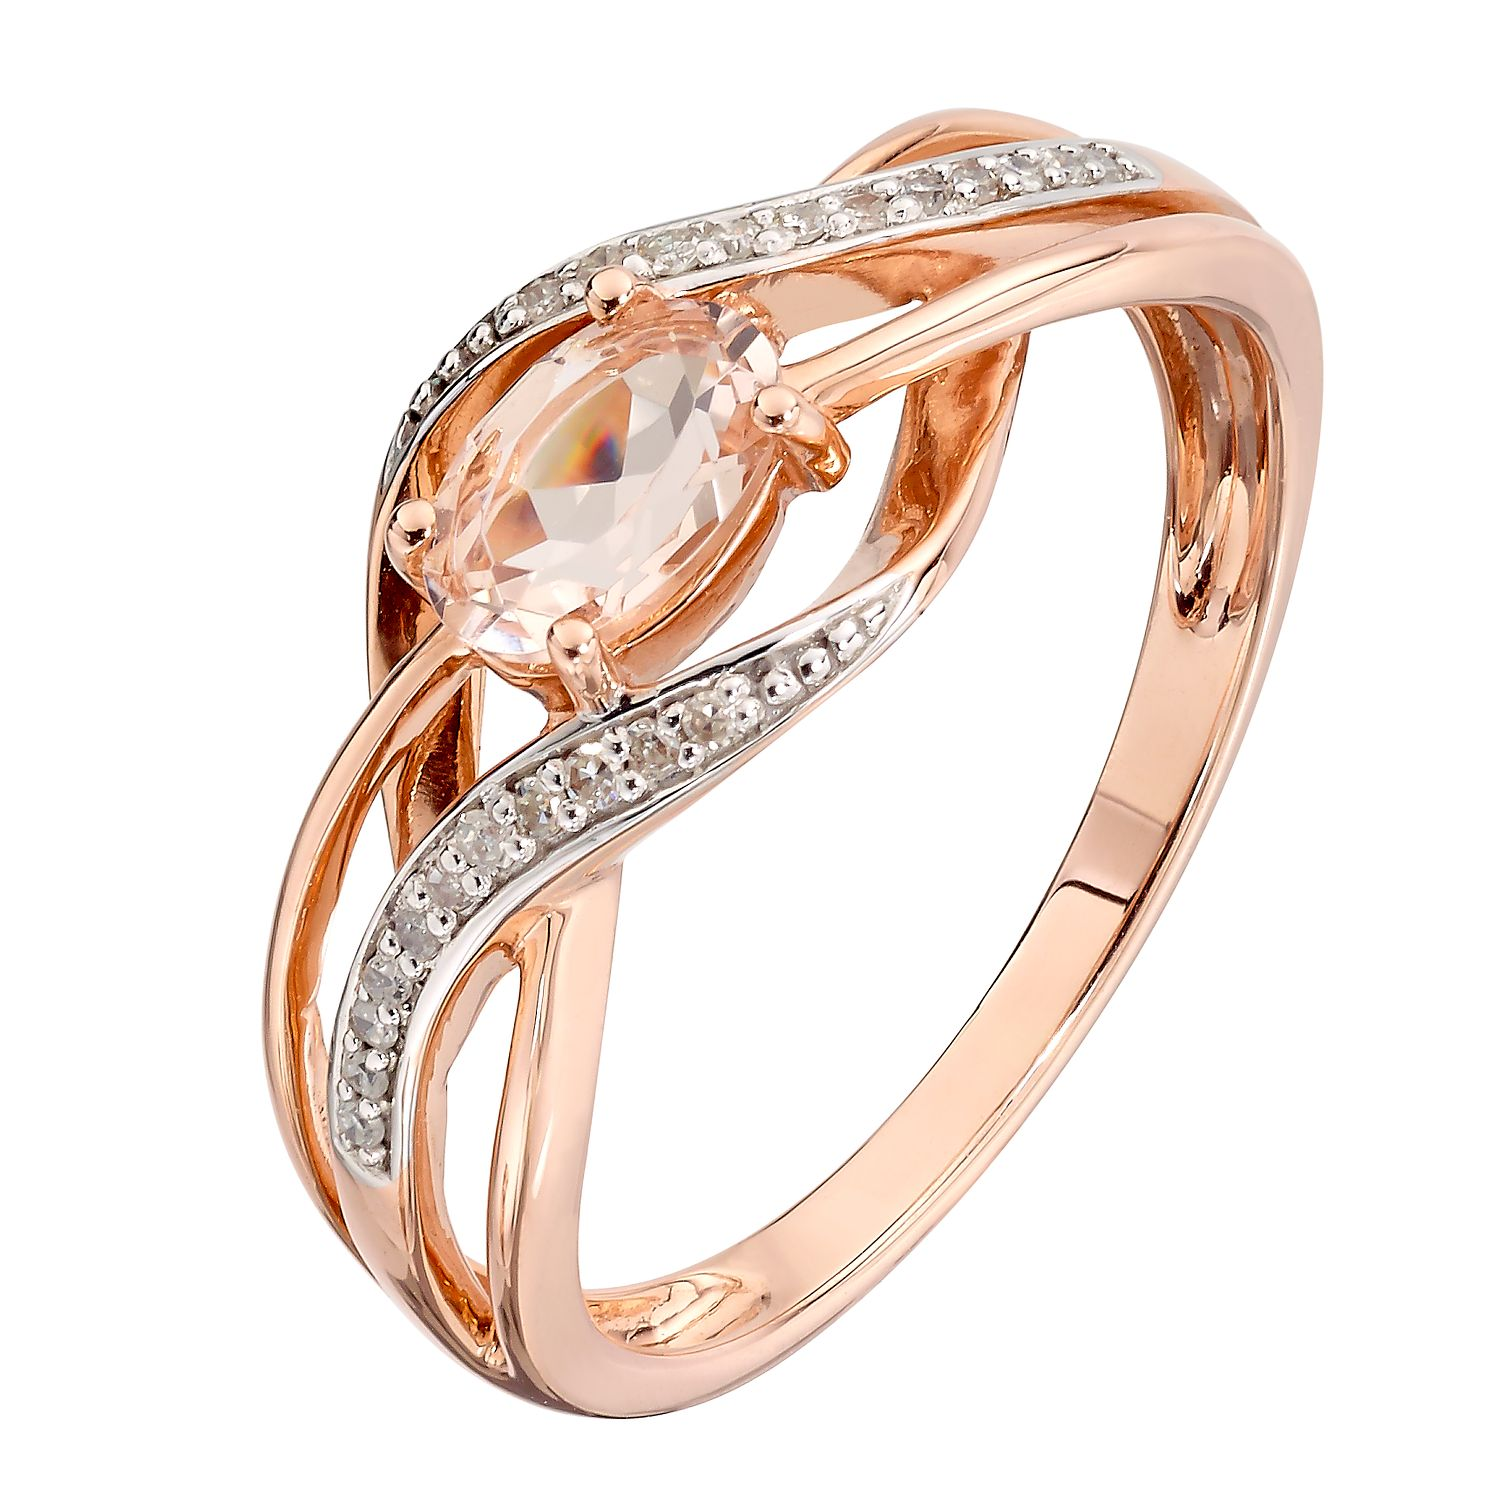 rings diamond solitaire gold engagement ring set in round rose tension rockher